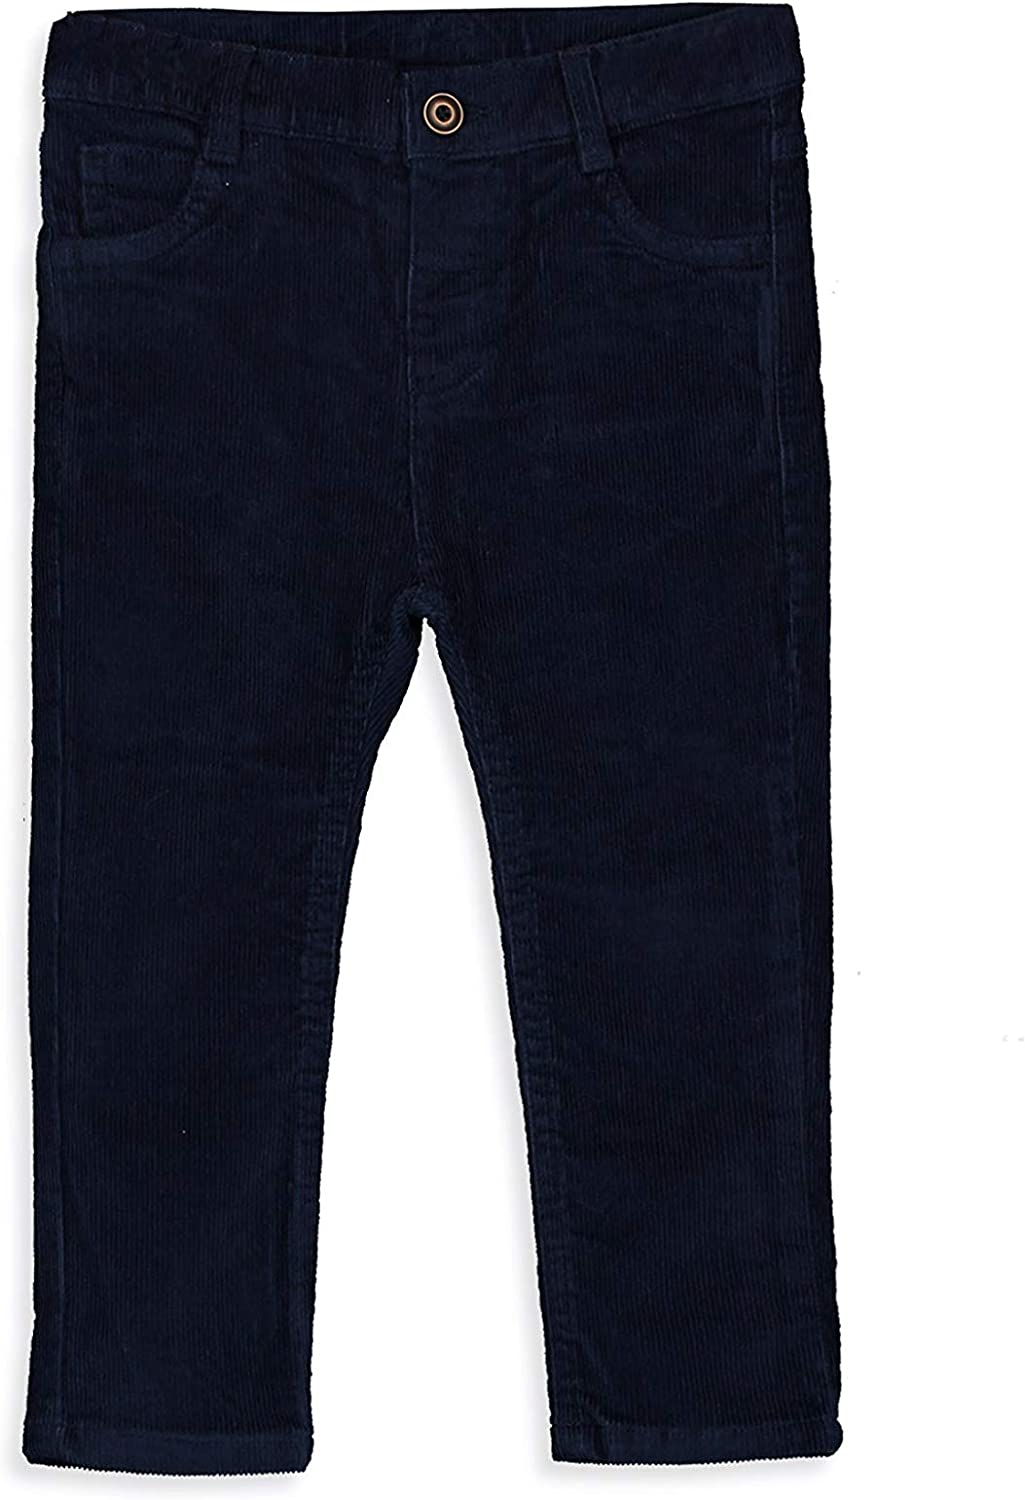 LC WAIKIKI Baby Corduroy Trousers Slim Fit for Boys